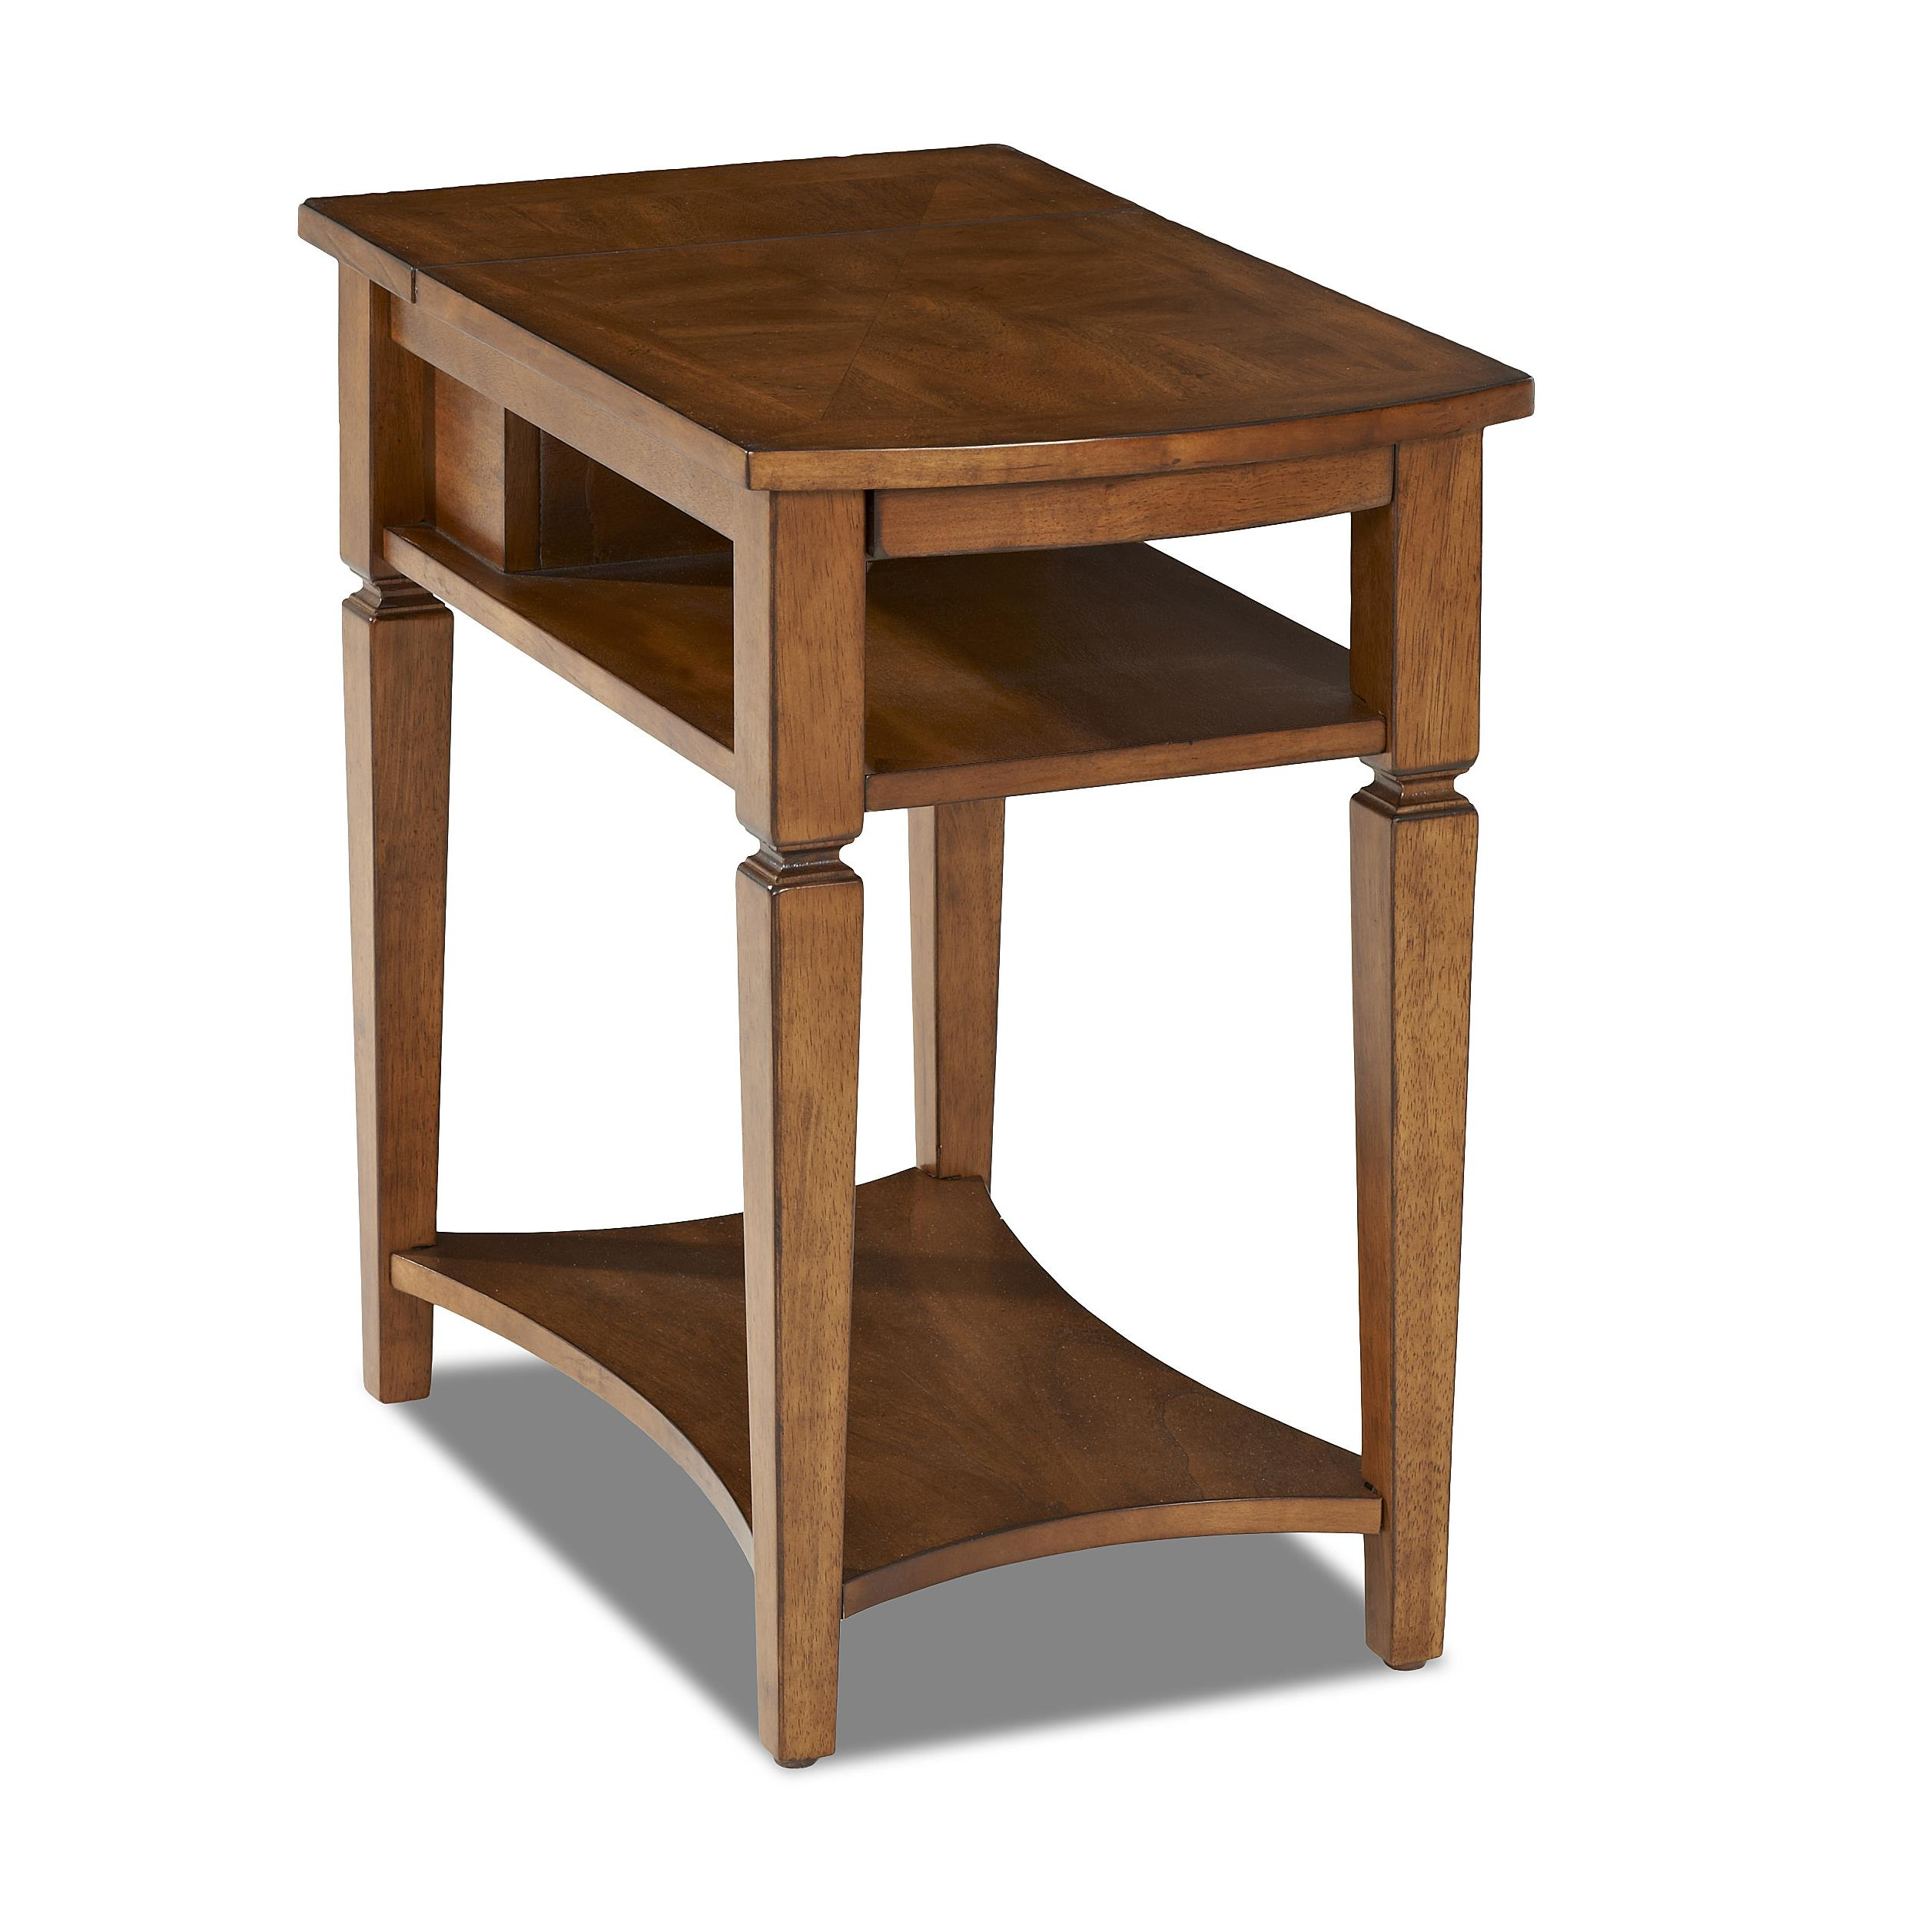 Wentworth Chairside Table With Pull Out Shelf And Power